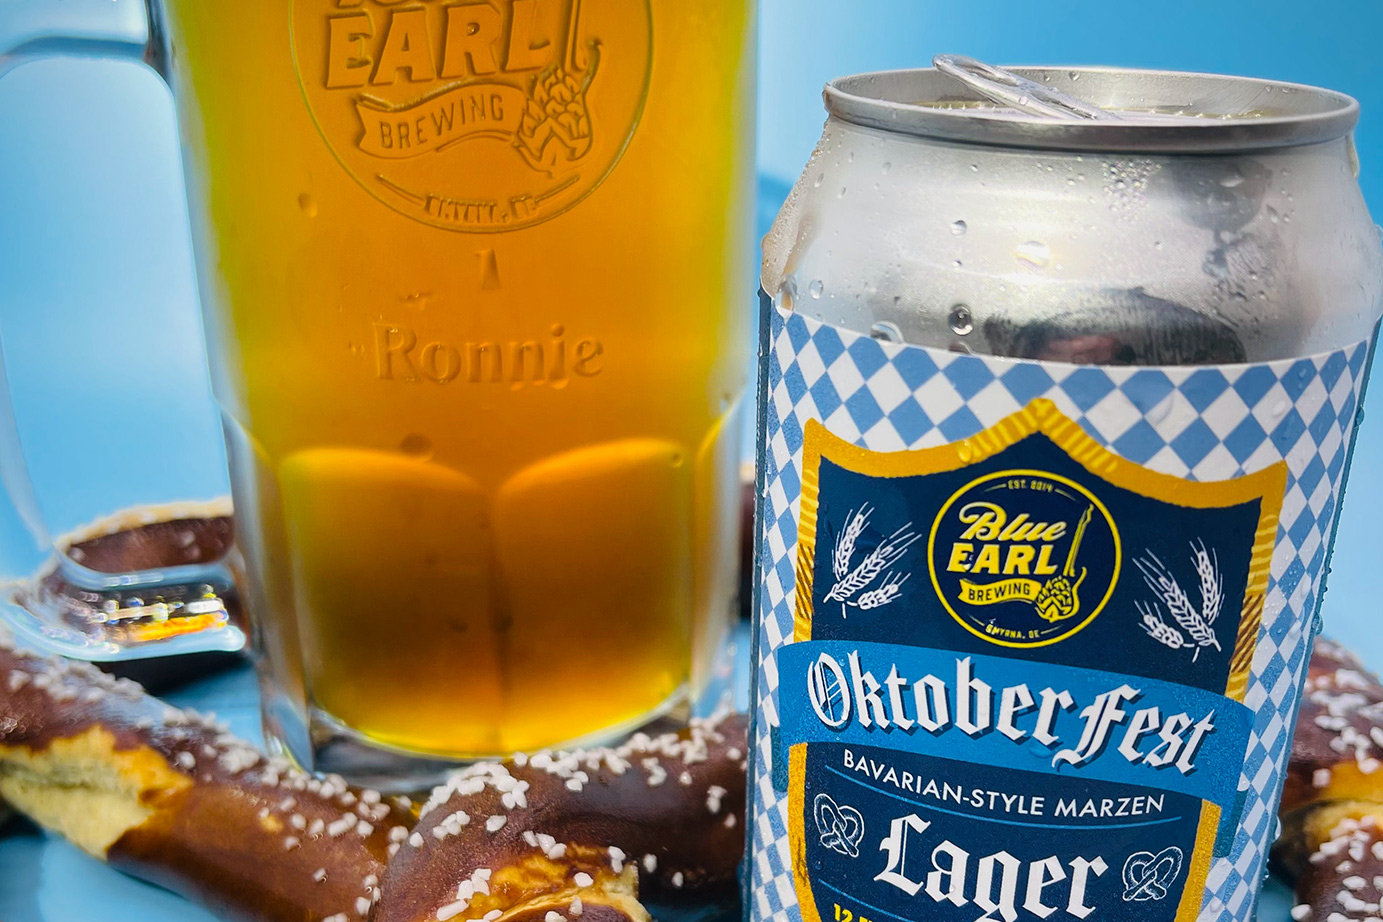 Some Oktoberfest action comin' at ya from Blue Earl Brewing.